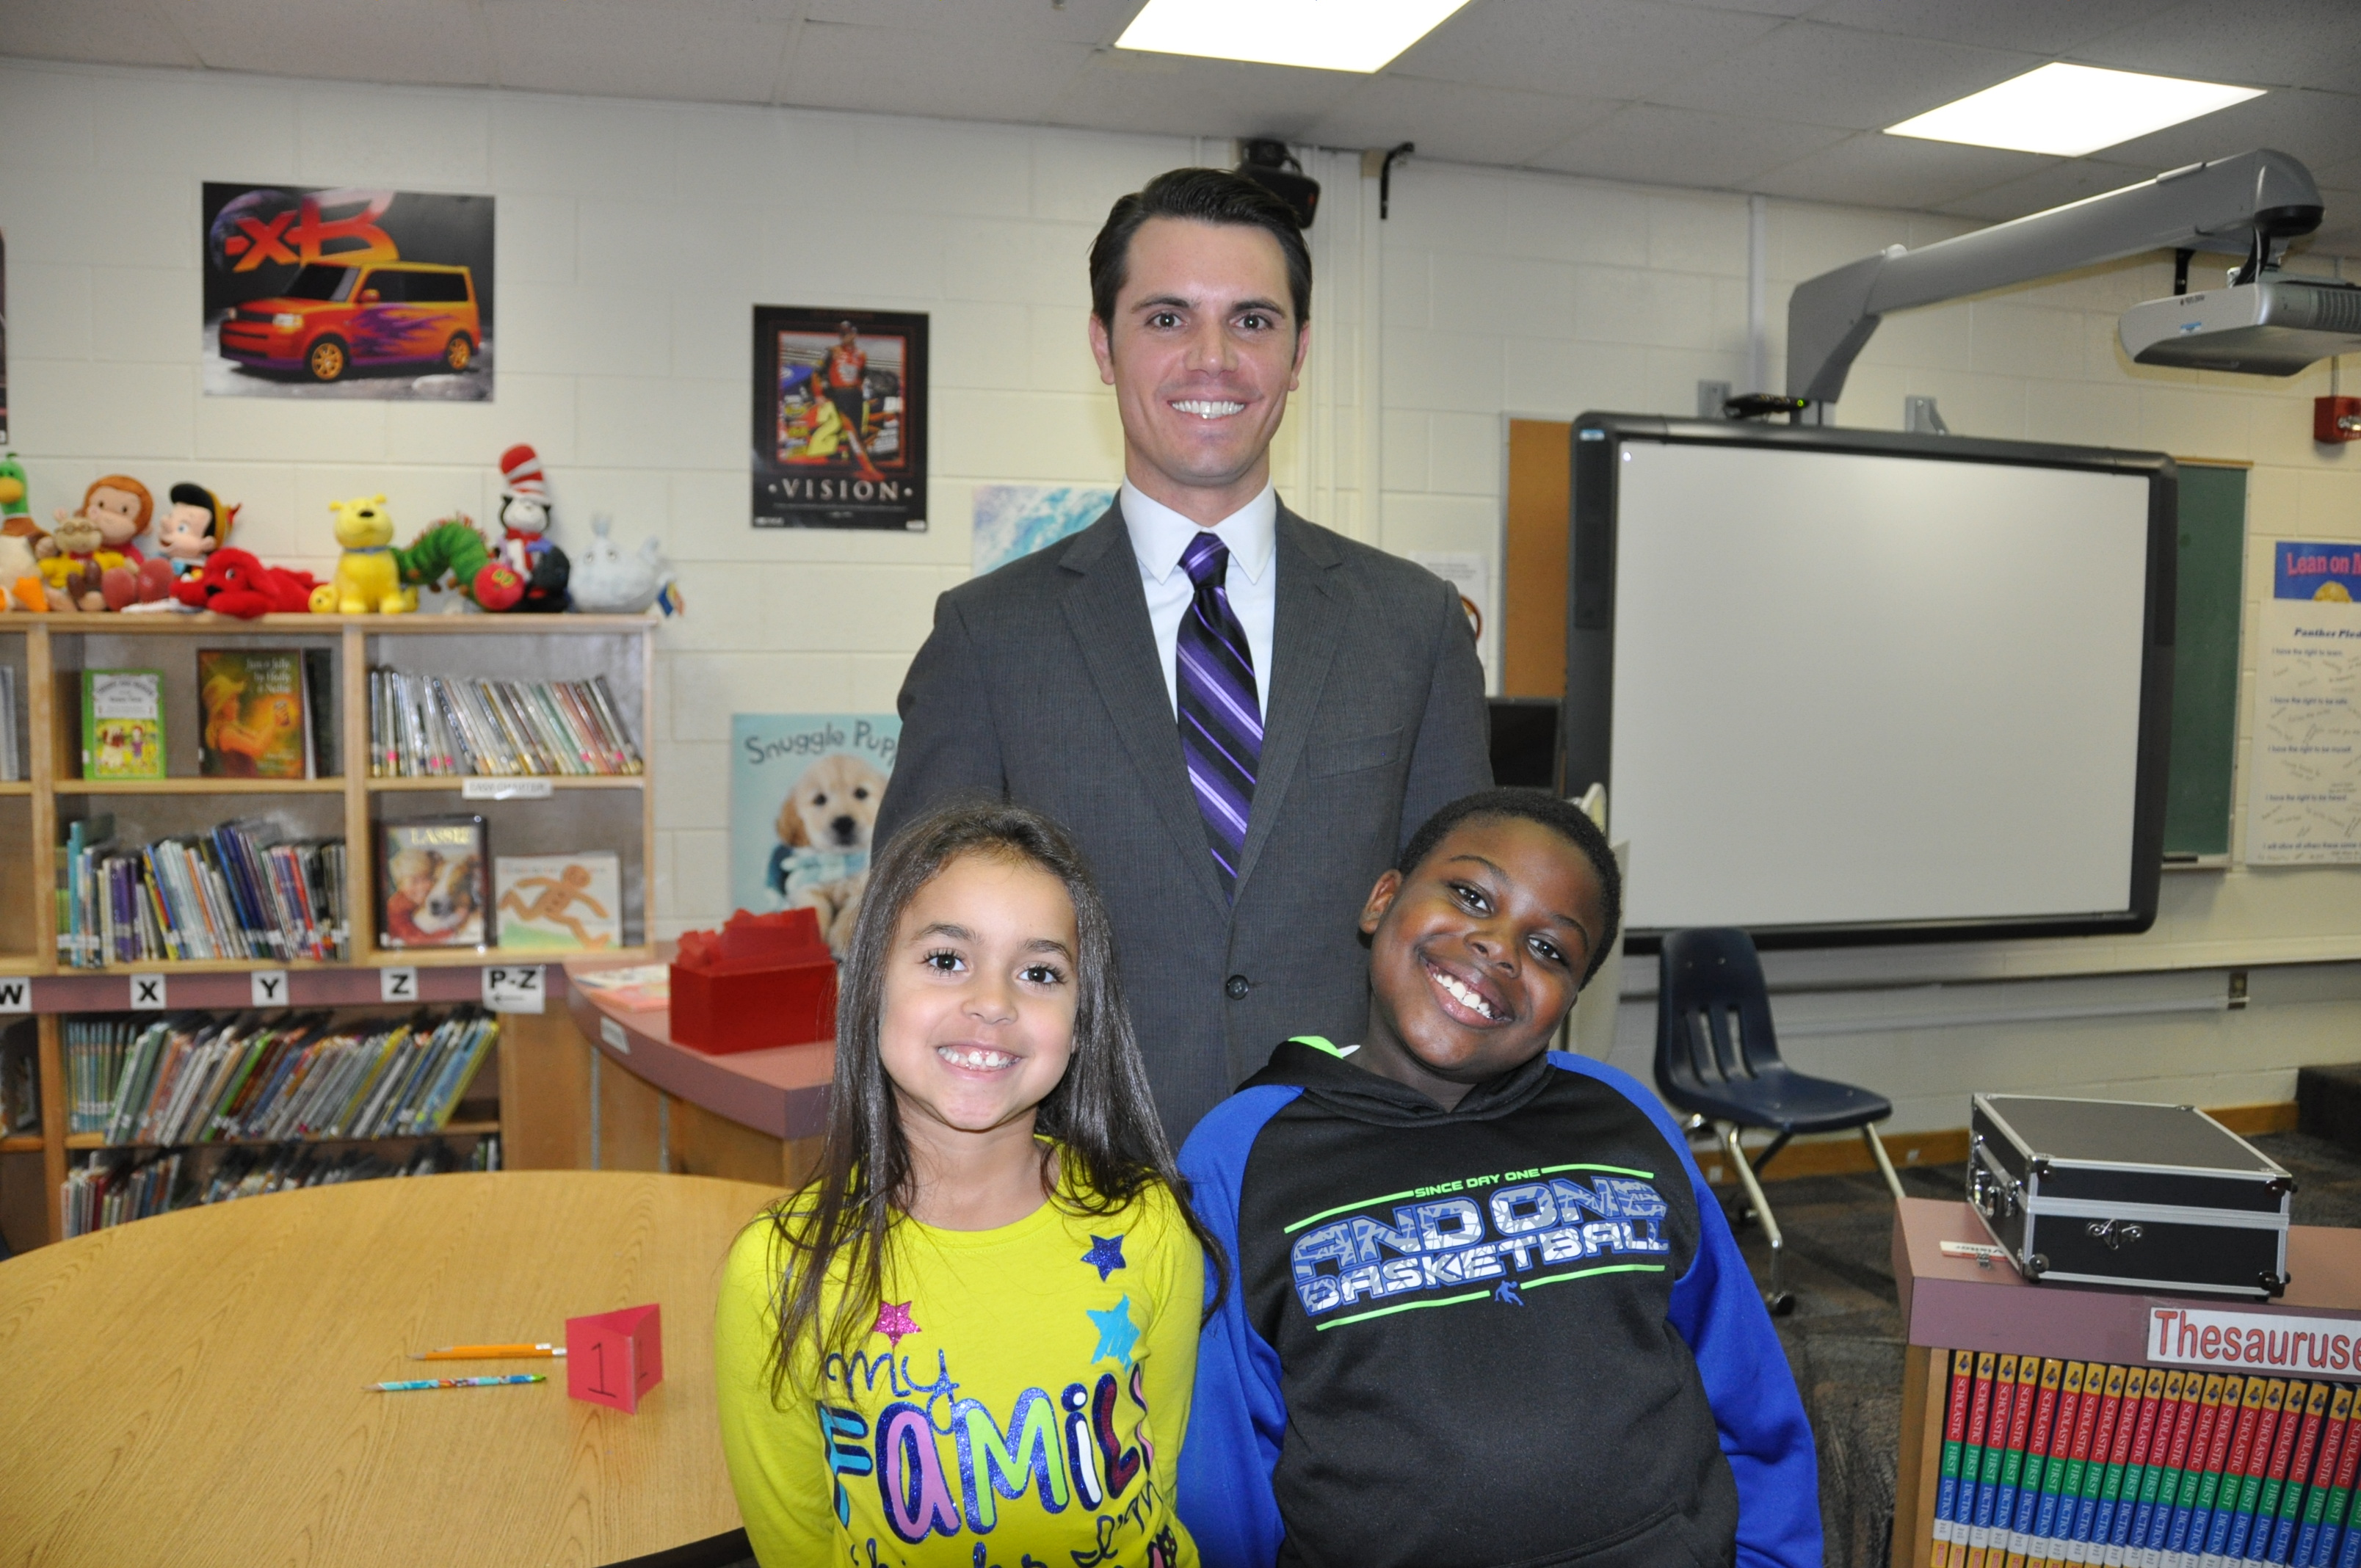 Myles Henderson, meteorologist from WTKR News channel 3, Liver VPIR Forecast Team talks to second-grade students at Parkway Elementary School about the SOLs that relate to the weather.  Shown here from left to right are  Alisha Possien, Troy Lawrence and Myles Henderson.